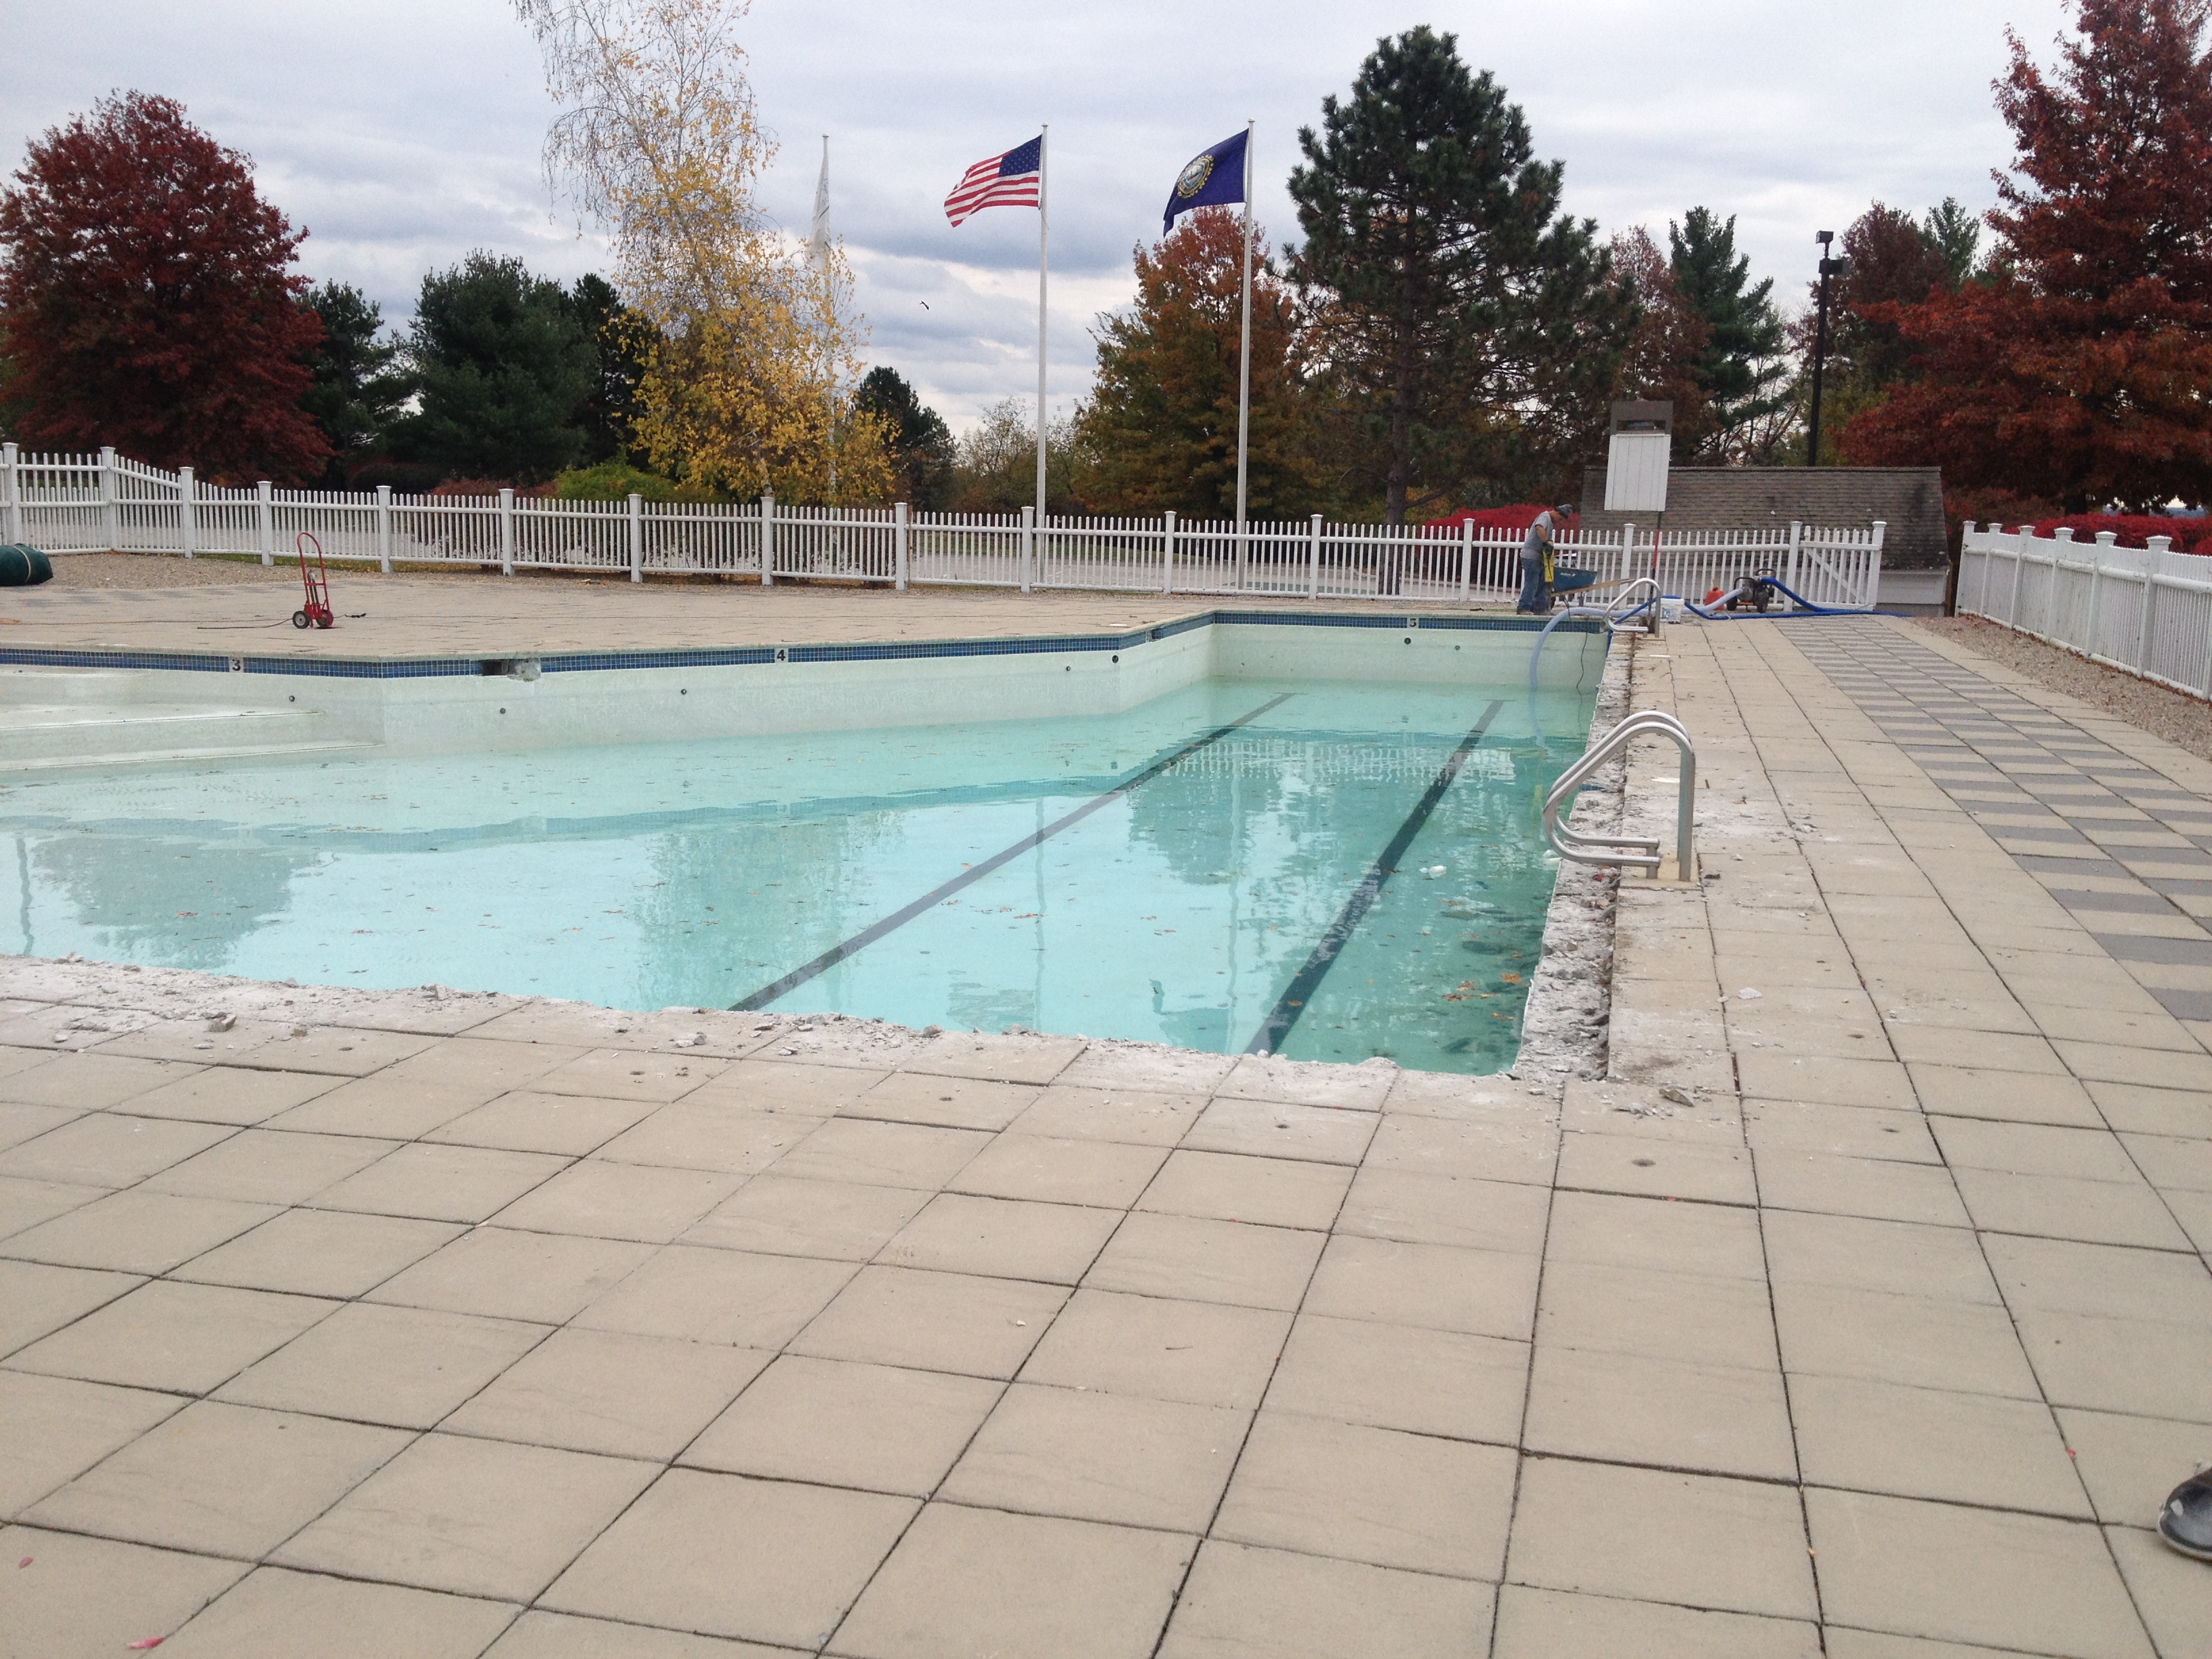 Commercial pool repair at skymeadow country club nashua nh for Affordable pools ma